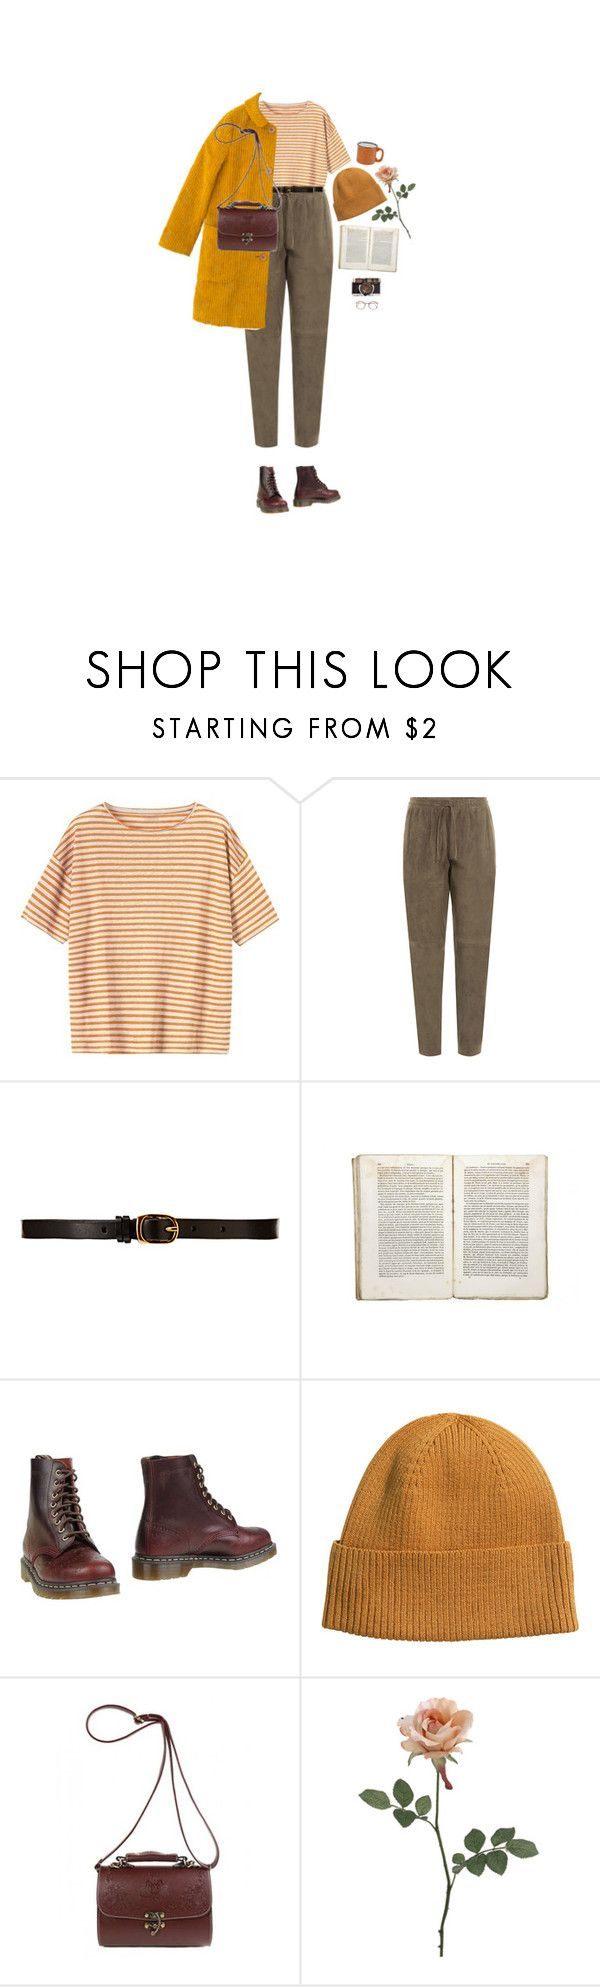 """kauniilla sanoilla minusta"" by hetasdfghjkl ❤ liked on Polyvore featuring Toast, Joseph, CO-OP Barneys New York, Jayson Home, Sally Scott, Dr. Martens and H&M"